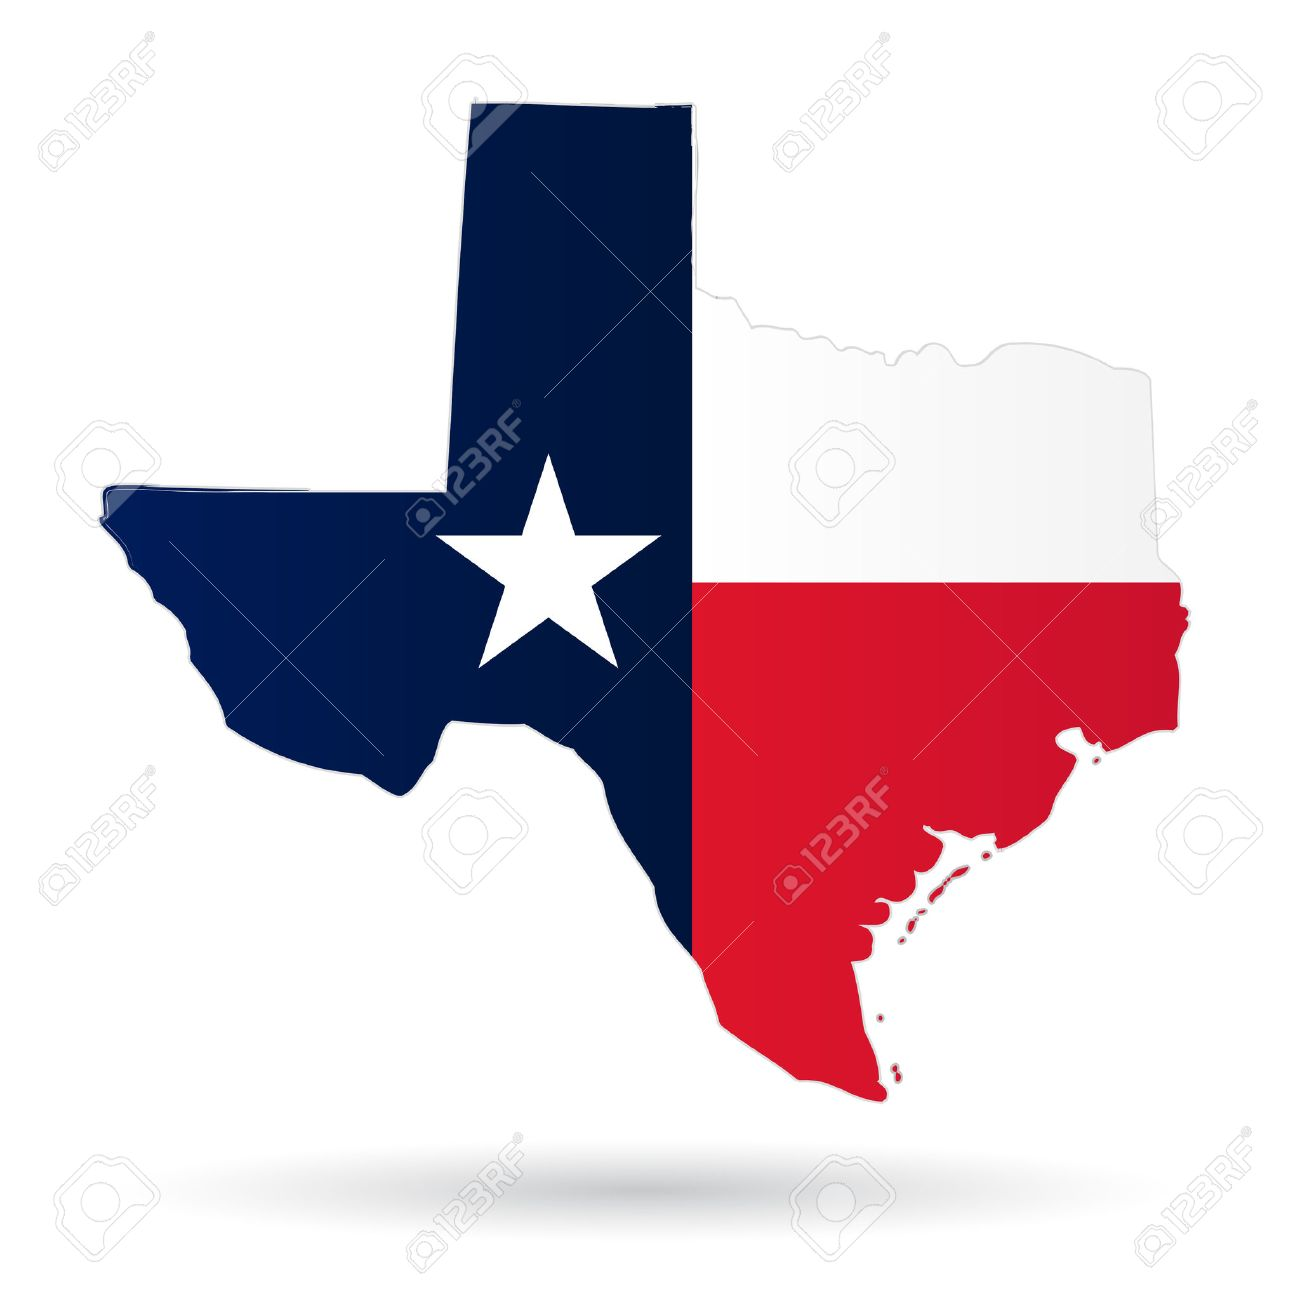 texas american state with flag silhouette - 30211572